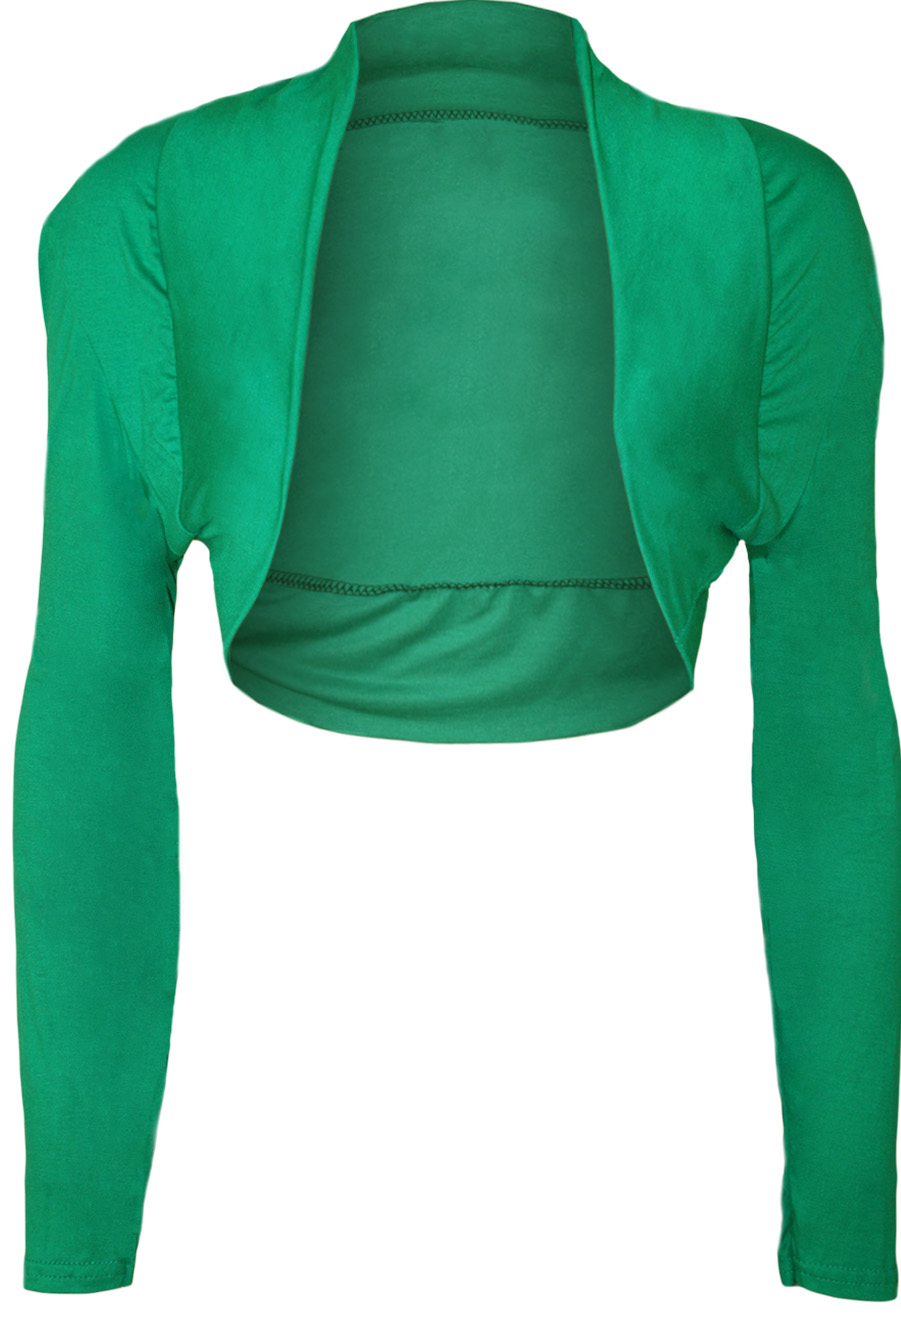 New-Womens-Plus-Size-Plain-Long-Sleeve-Cropped-Ladies-Shrug-Bolero-Cardigan-Top